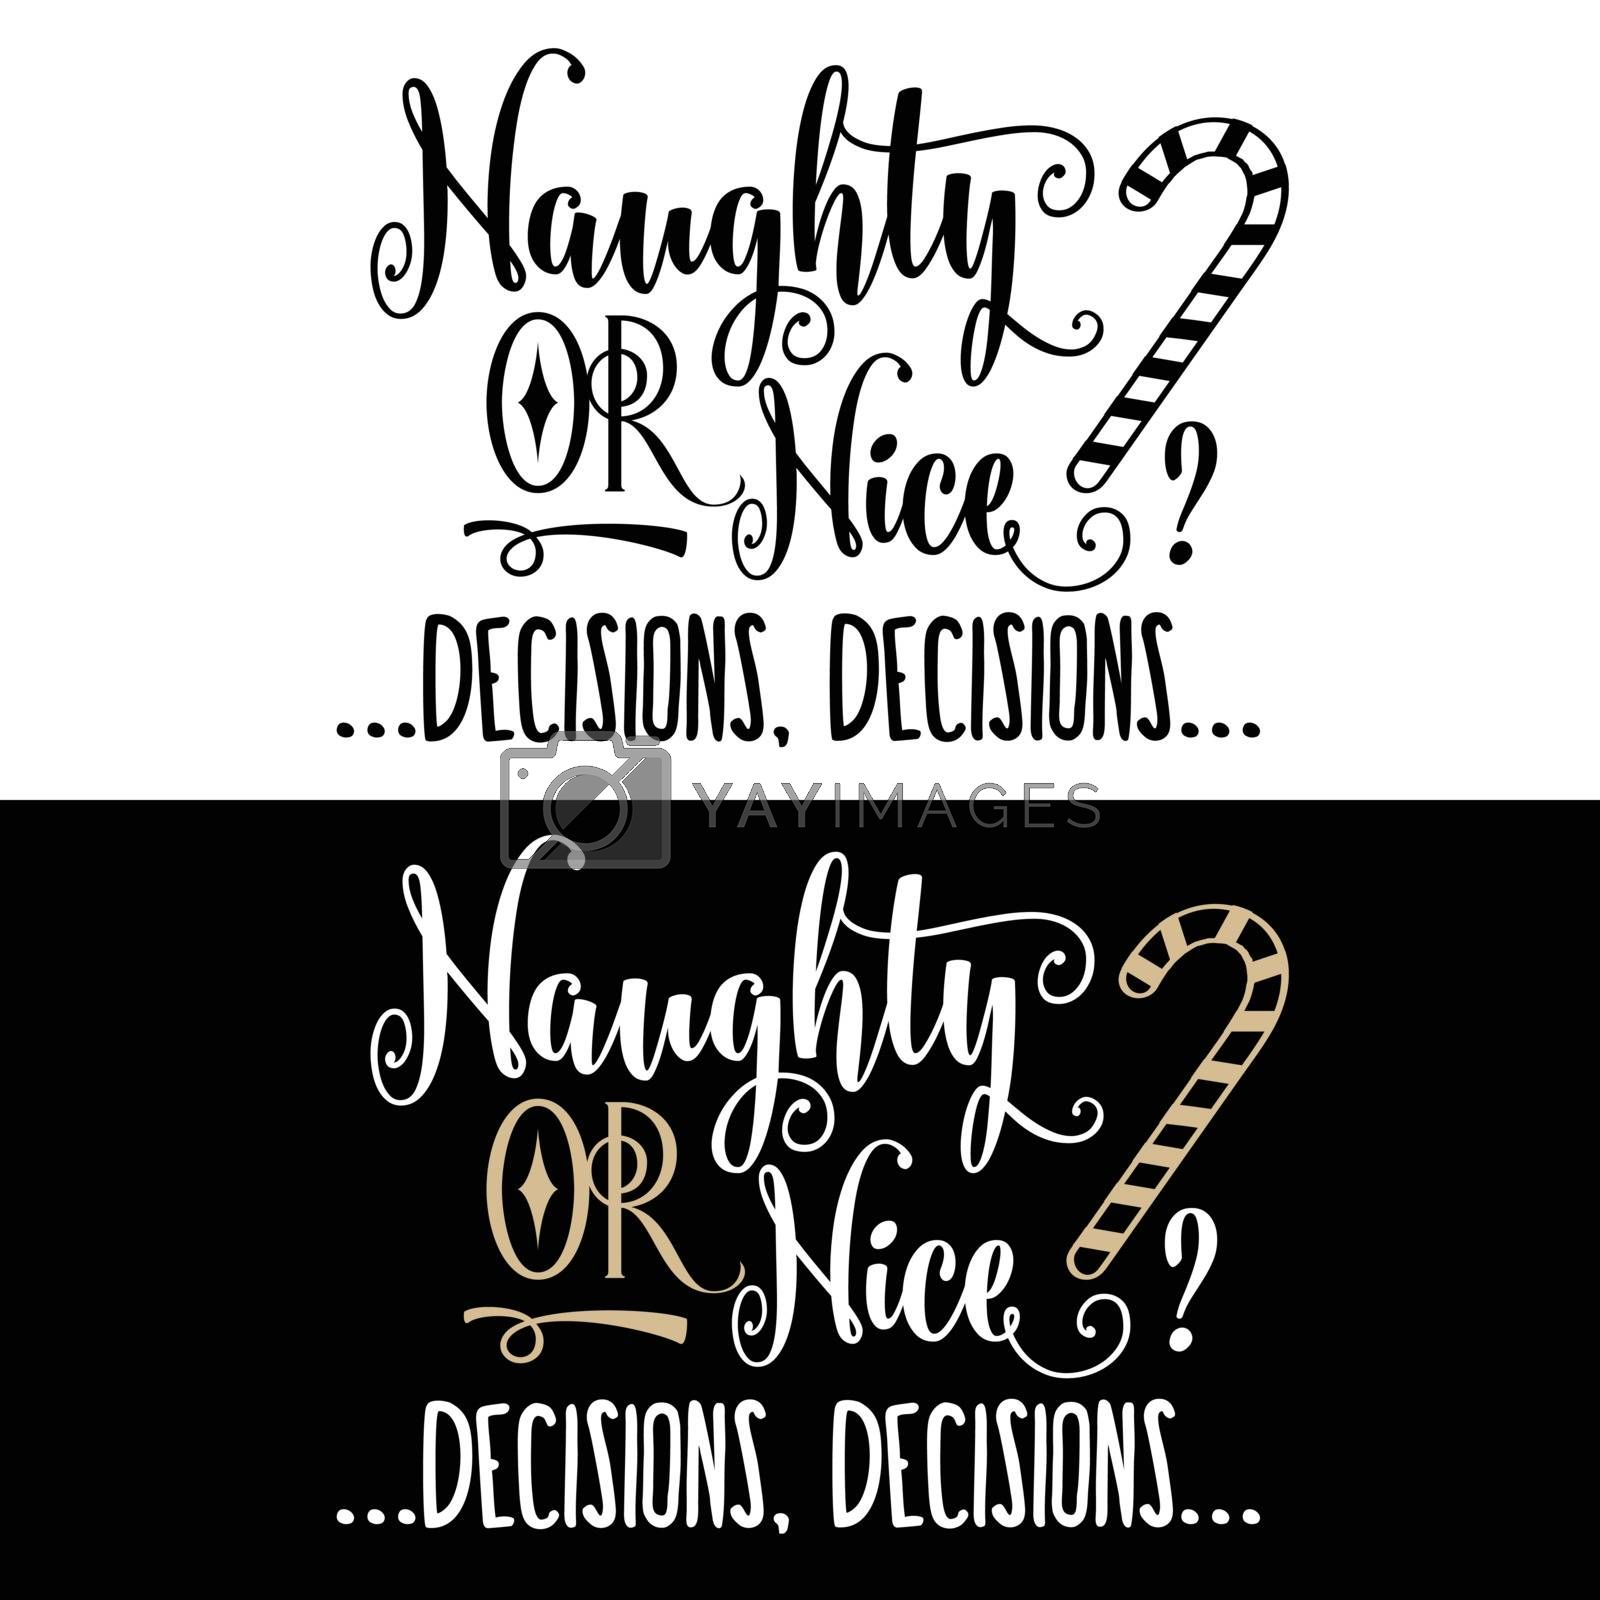 Funny Christmas quote. Naughty or nice, decision, decision. Christmas poster, banner, Christmas card